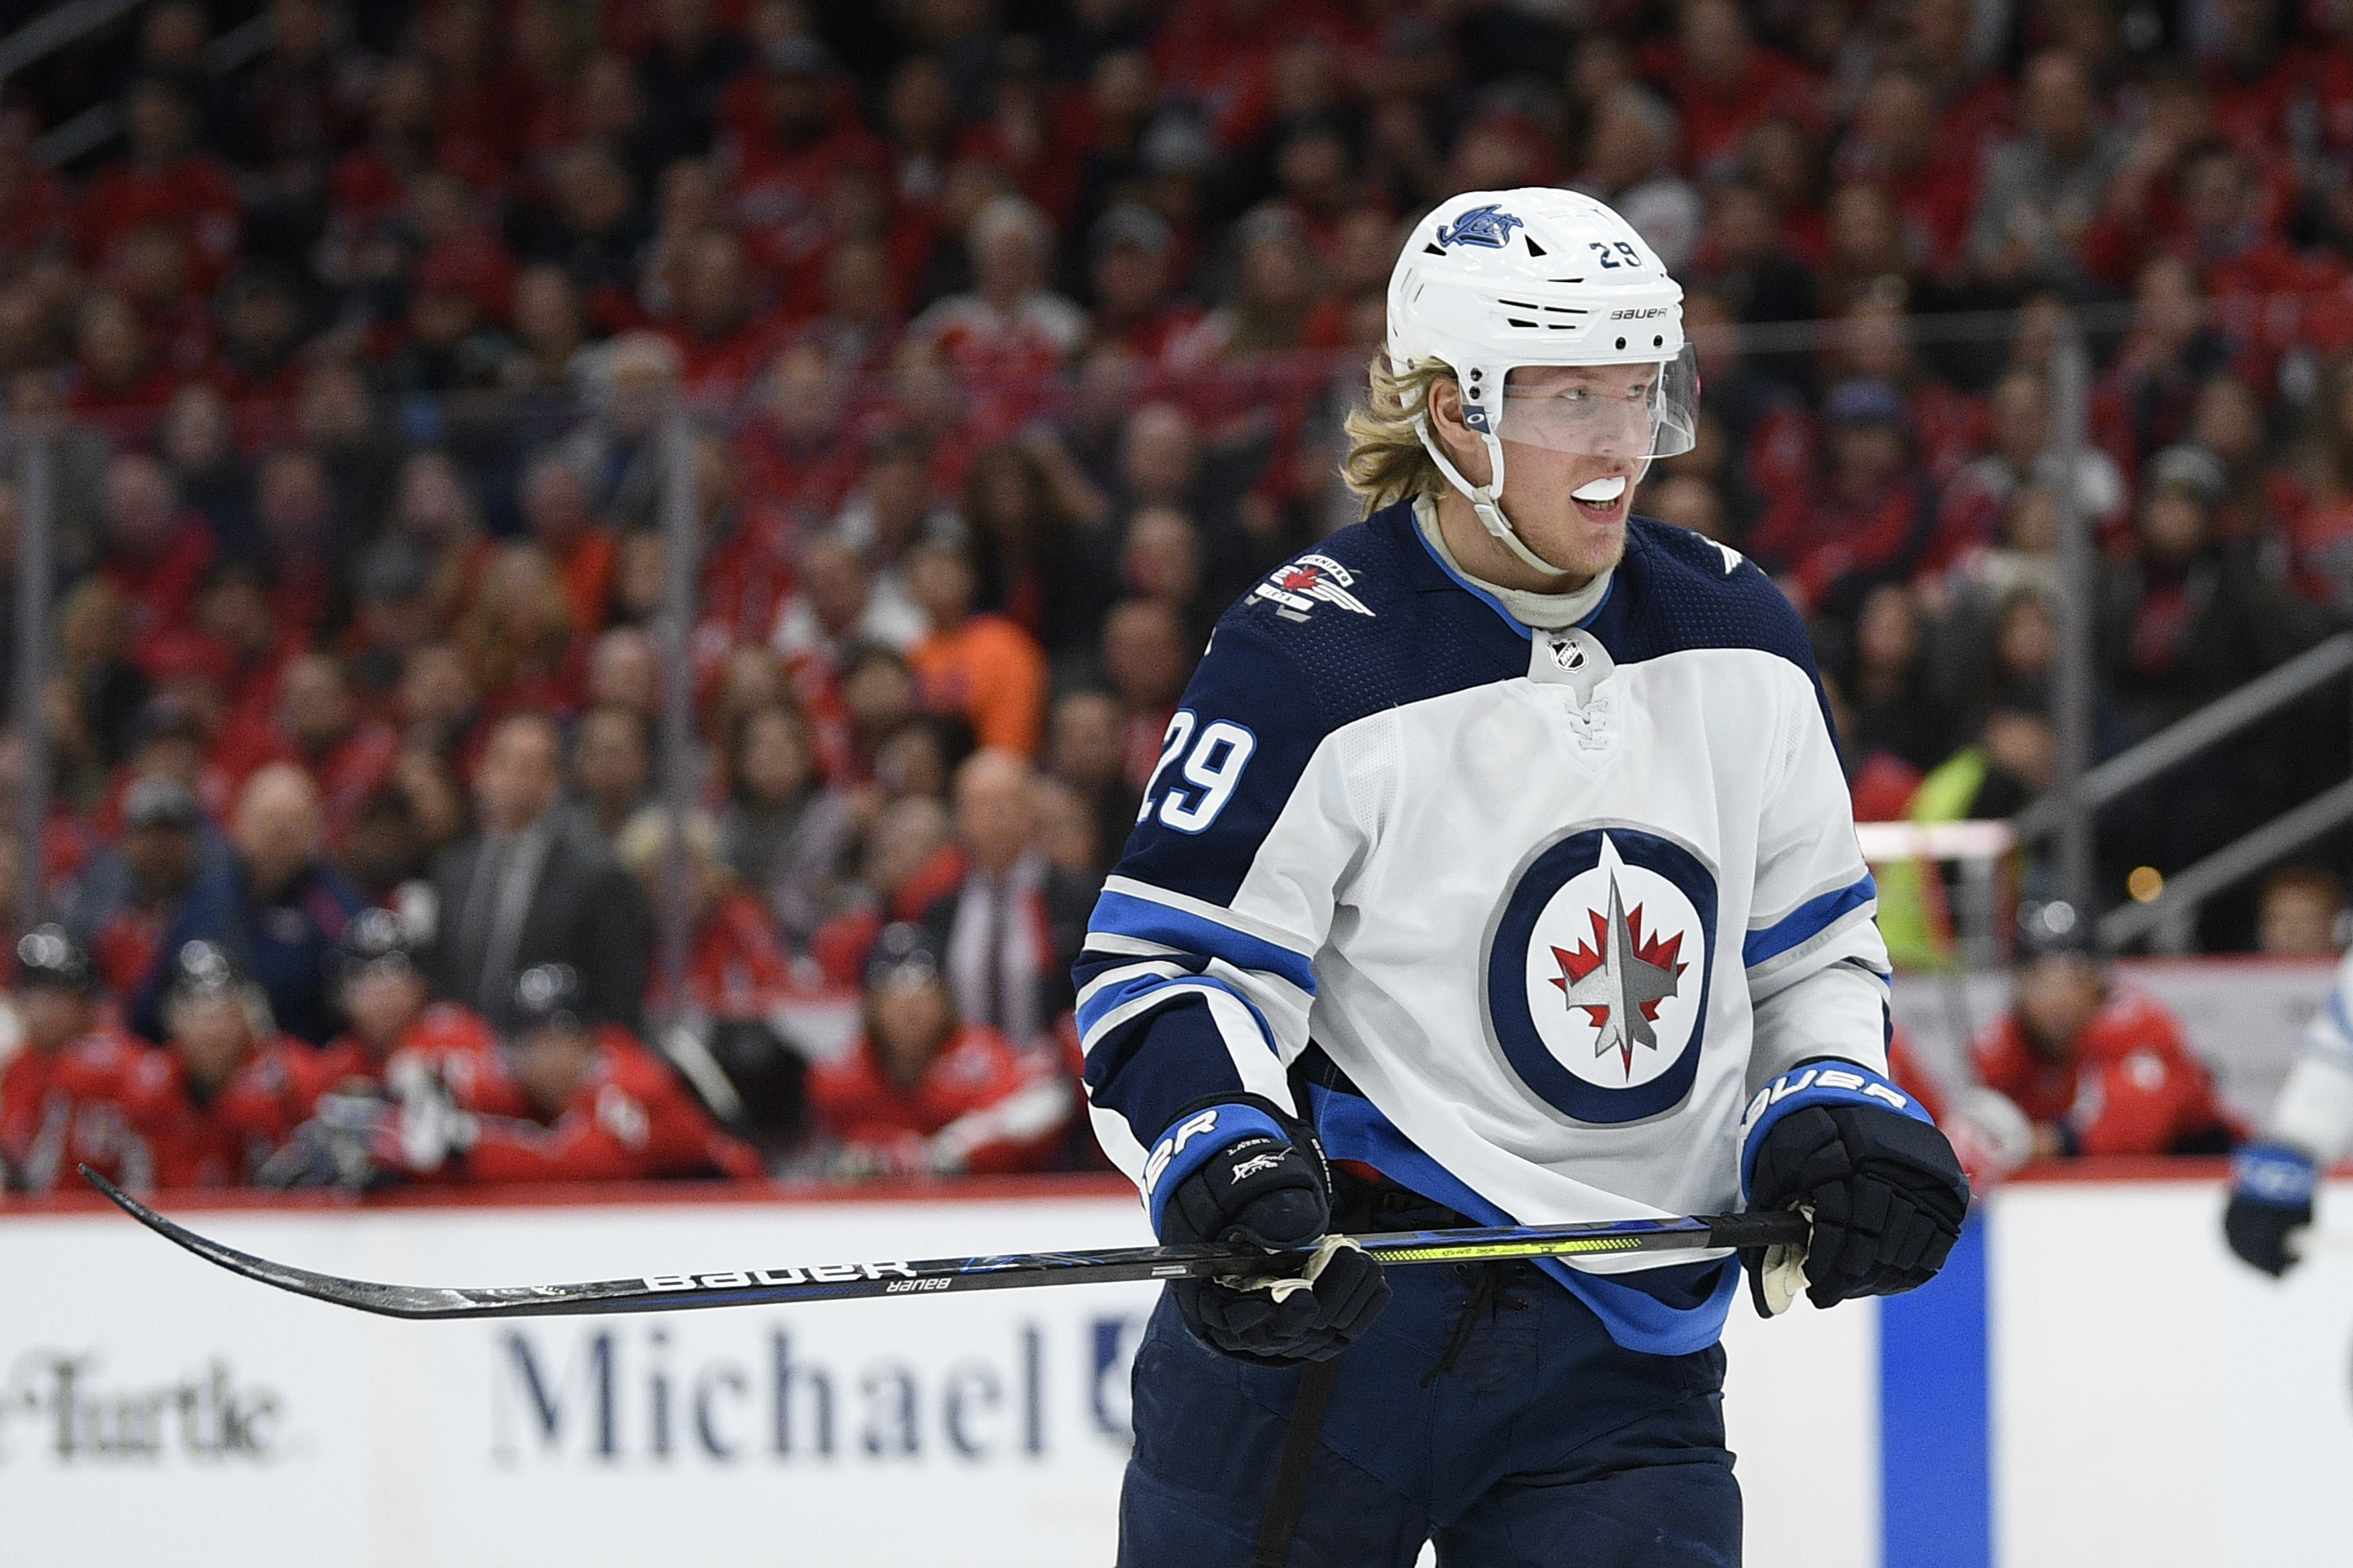 Nhl Trade Rumors Latest Buzz On Patrik Laine Matt Dumba And More Bleacher Report Latest News Videos And Highlights